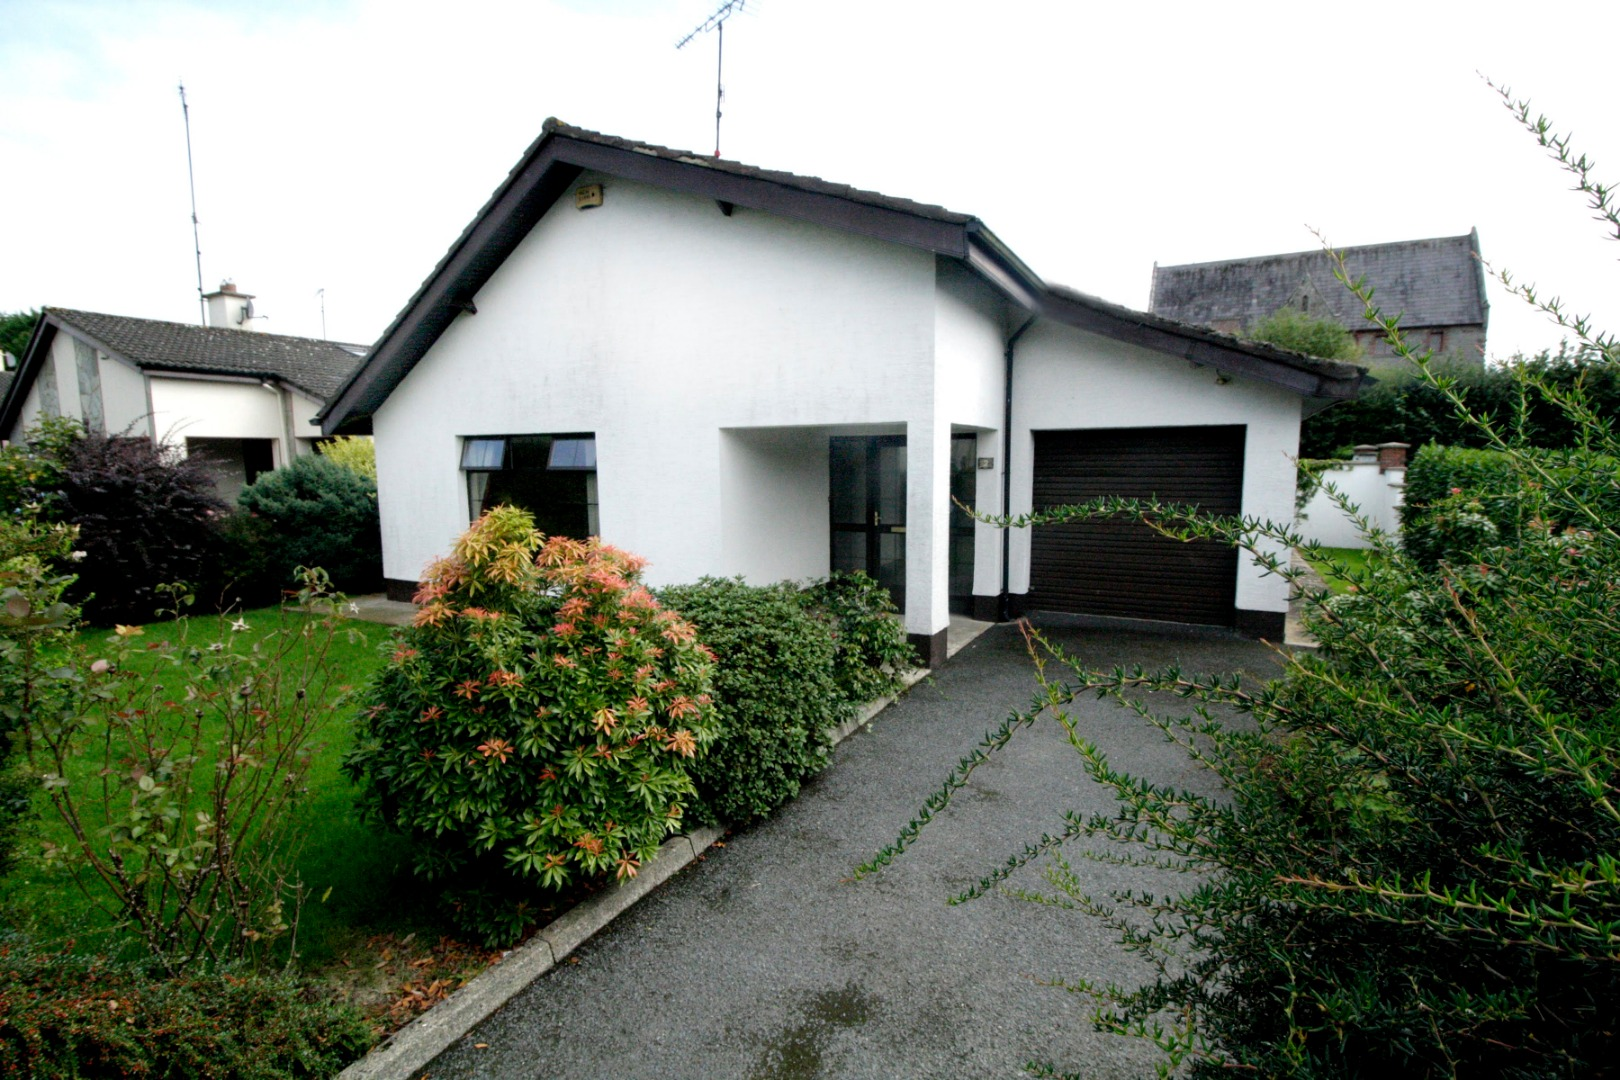 4 bed Bungalow for sale on No.2 Derryolam Park, Carrickmacross, Co. Monaghan - Property Image 1